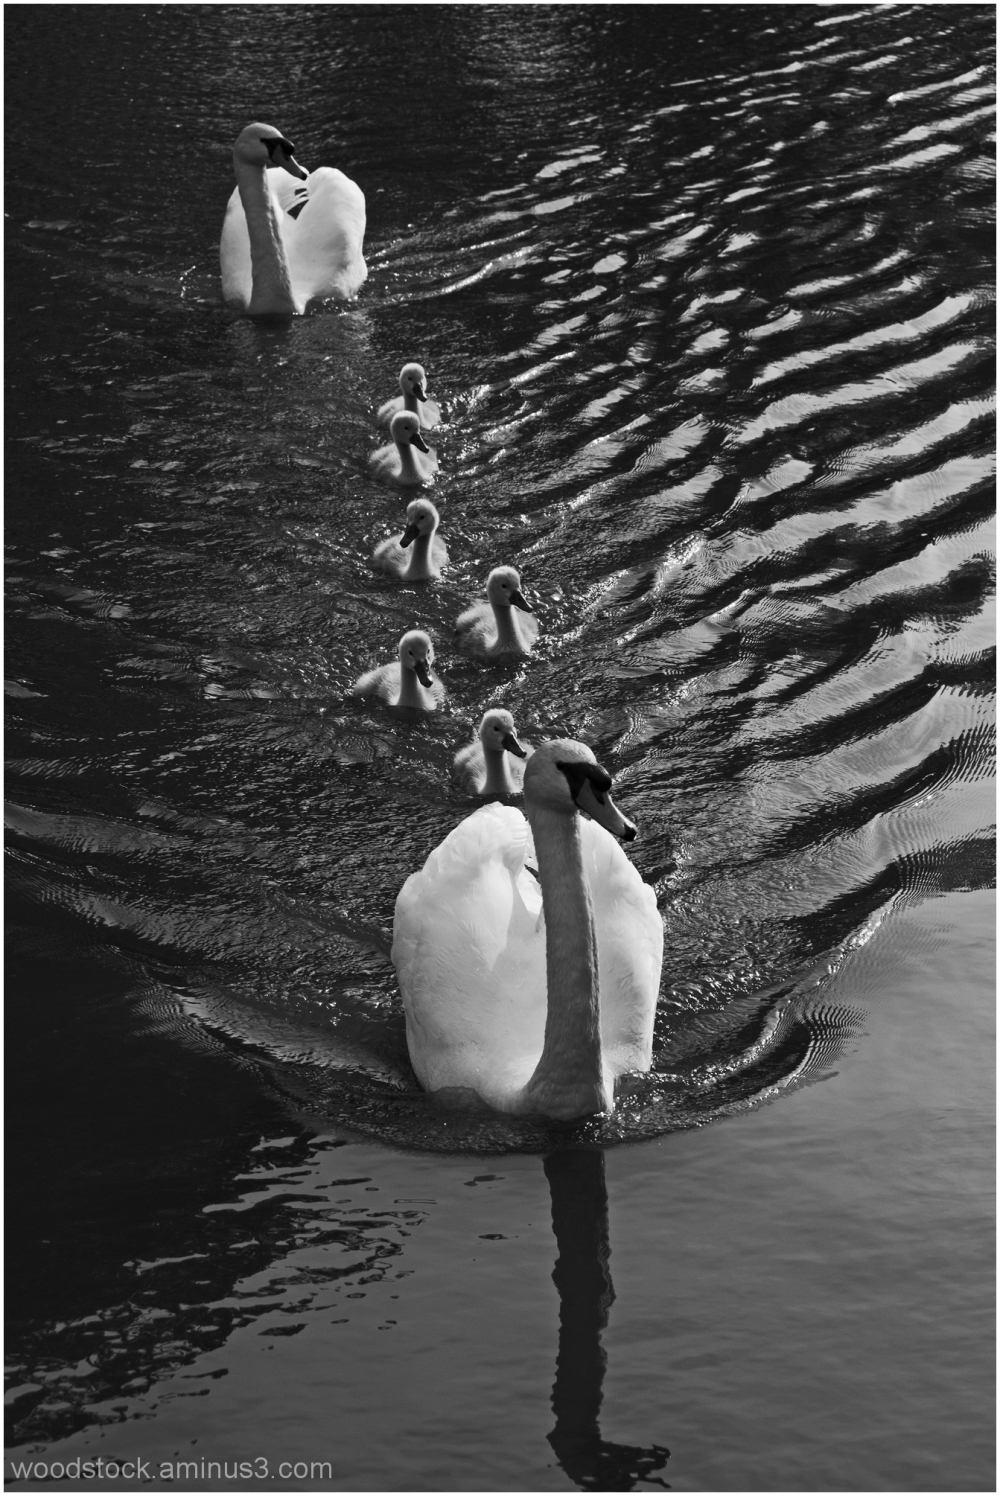 The Swan Family